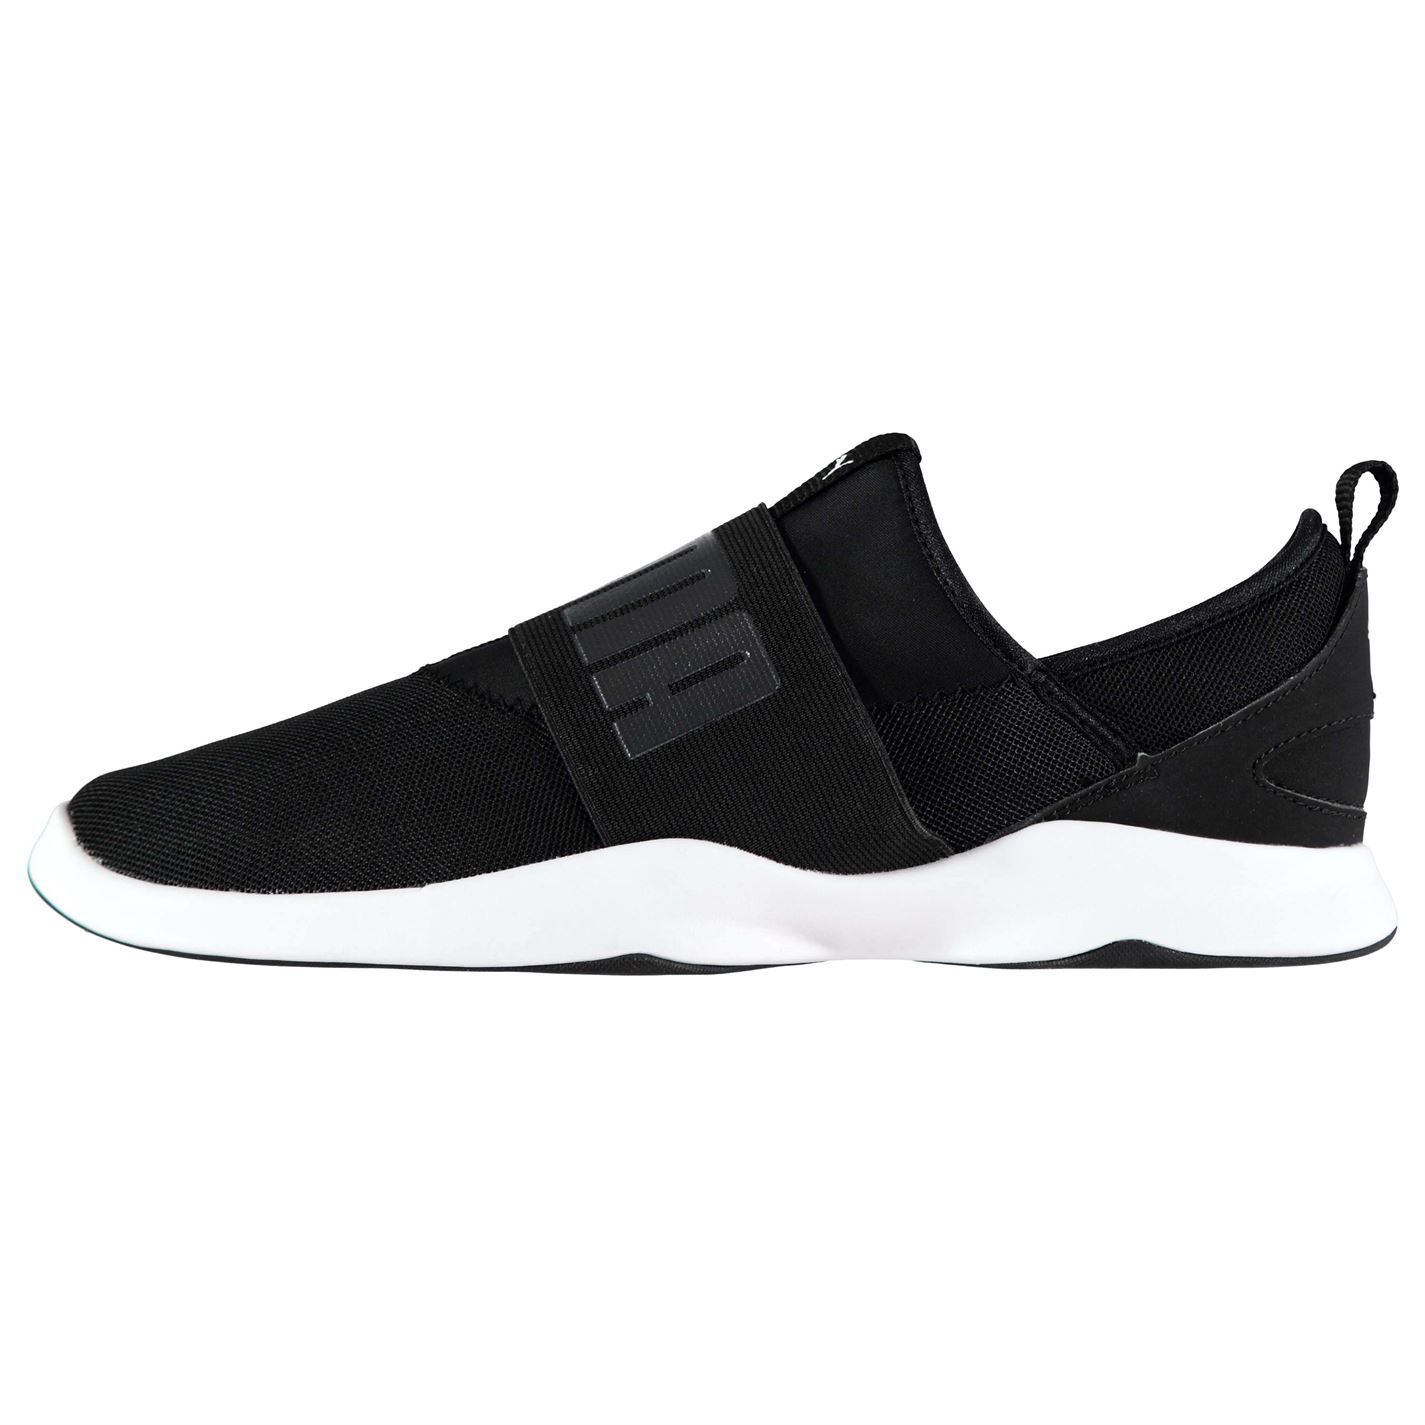 Puma Womens Dare Trainers Slip On